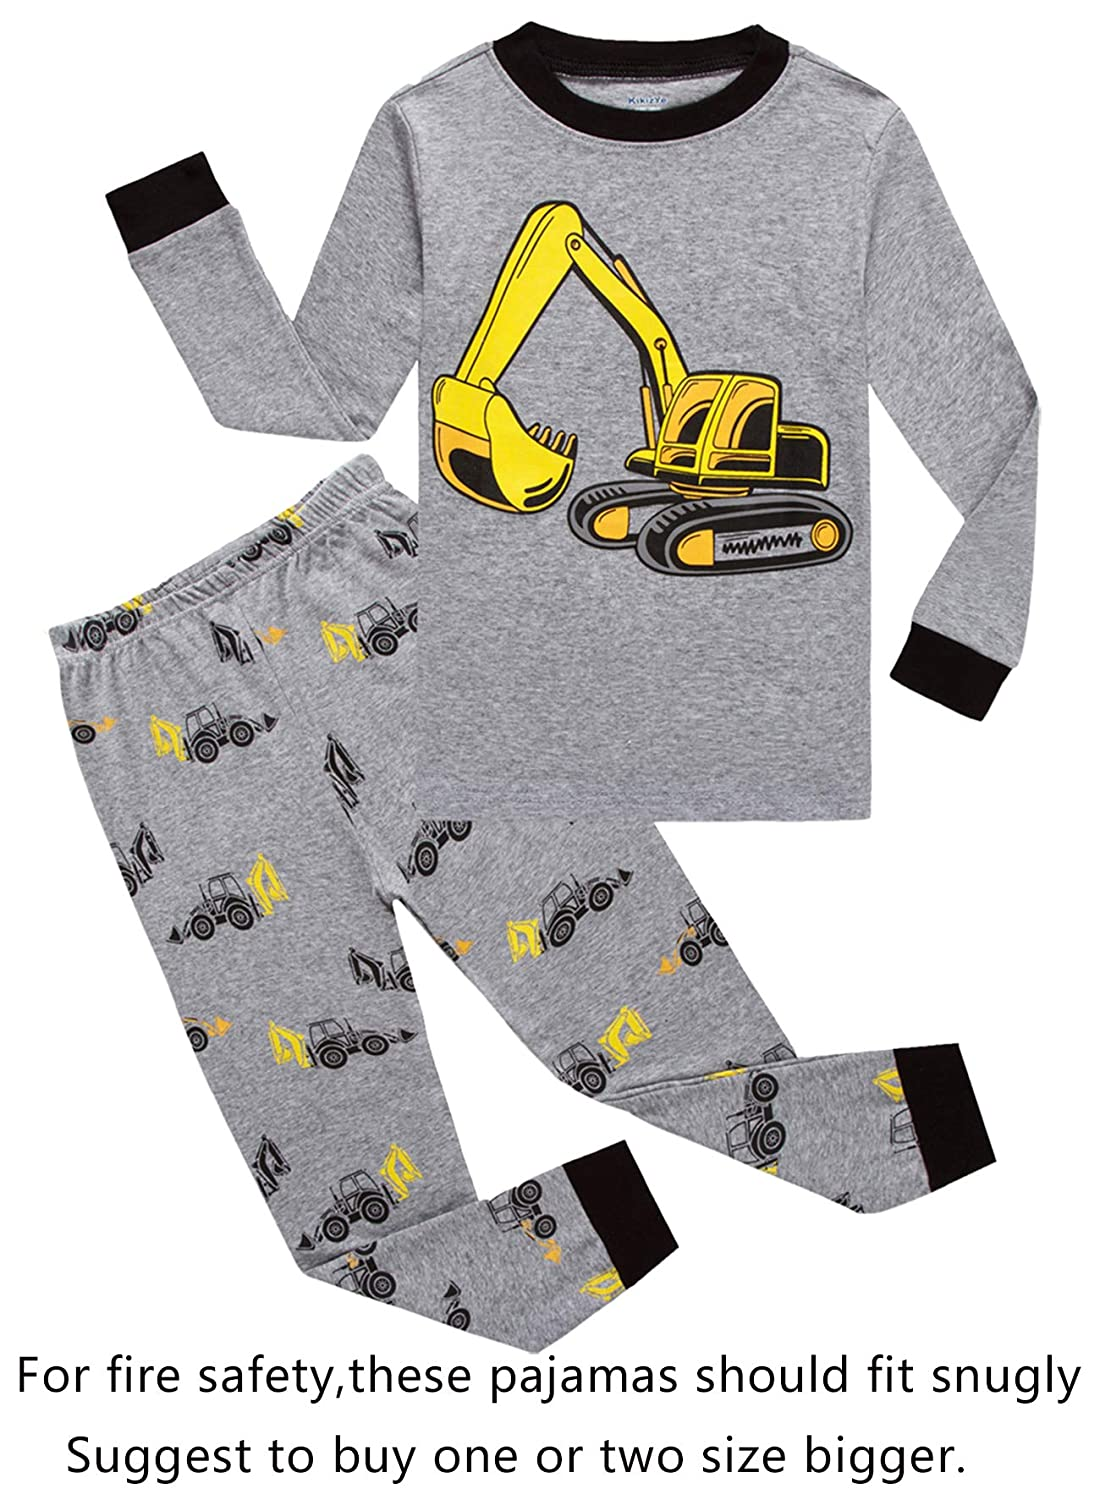 Family Feeling Truck Little Boys Kids Pajamas Sets 100% Cotton Pjs Toddler CCTruckDDD